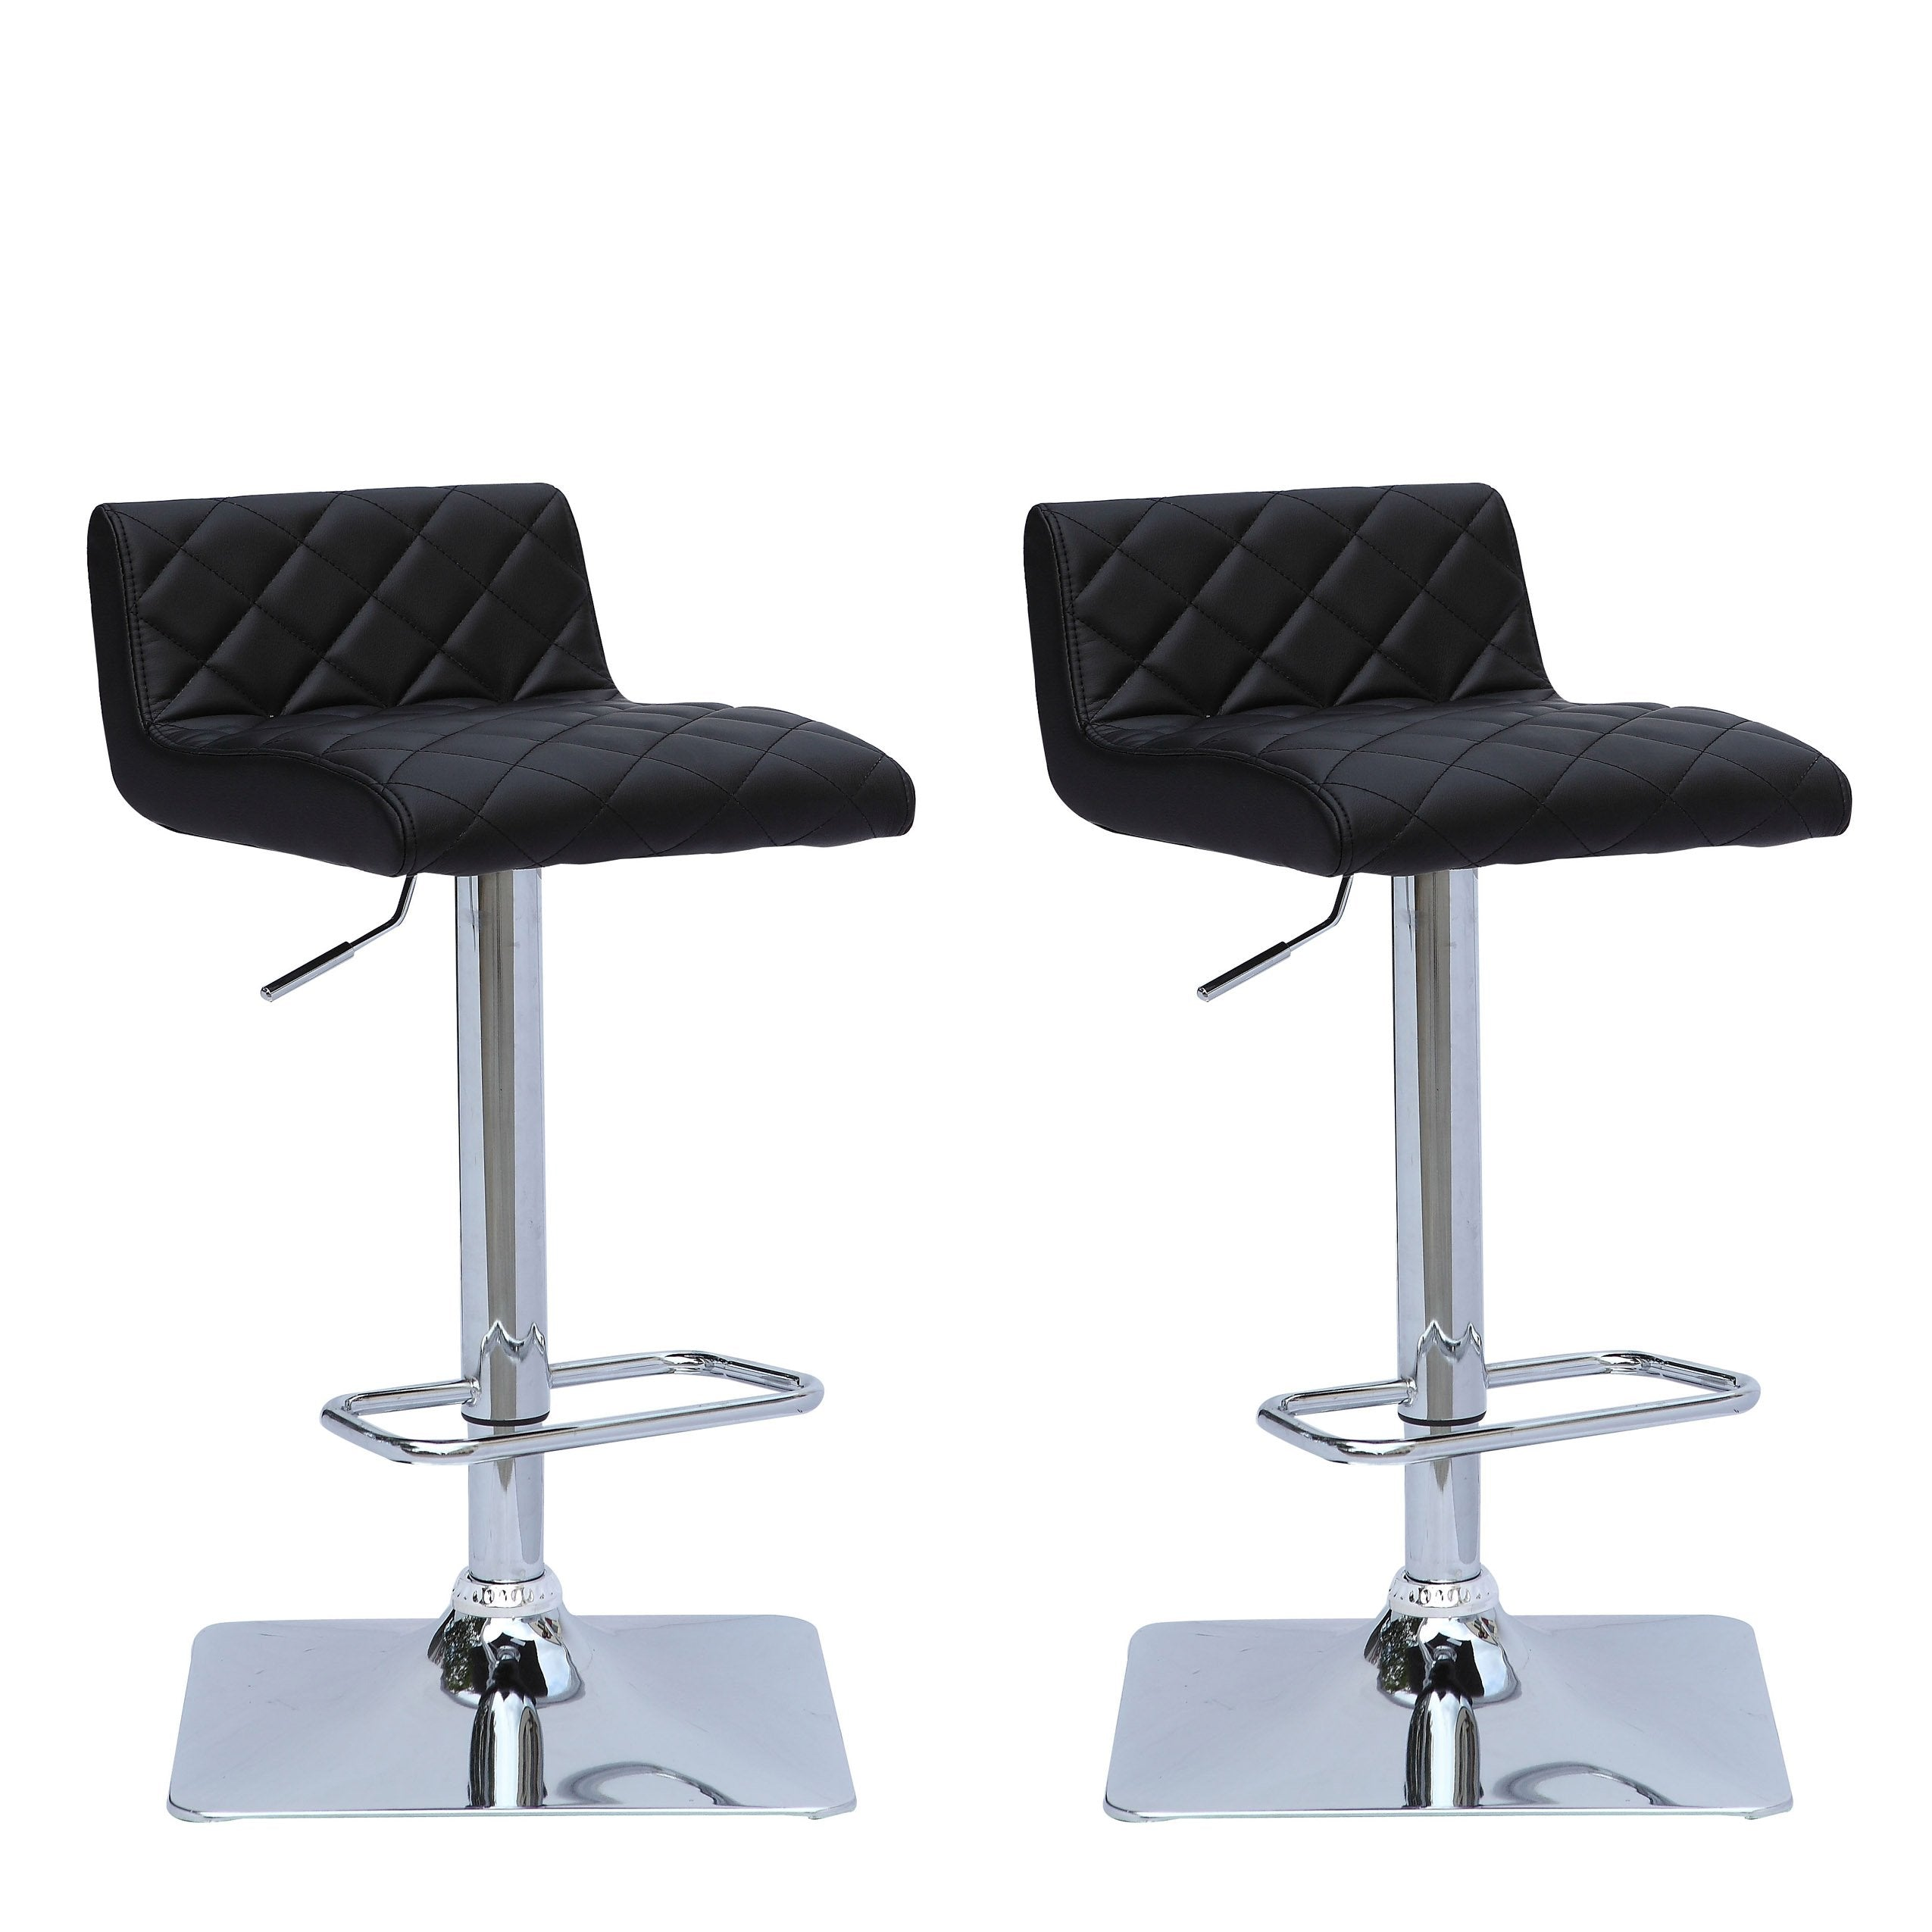 Groovy Adjustable Low Back Square Tufted Bar Stool Set Of 2 Clearance Pabps2019 Chair Design Images Pabps2019Com